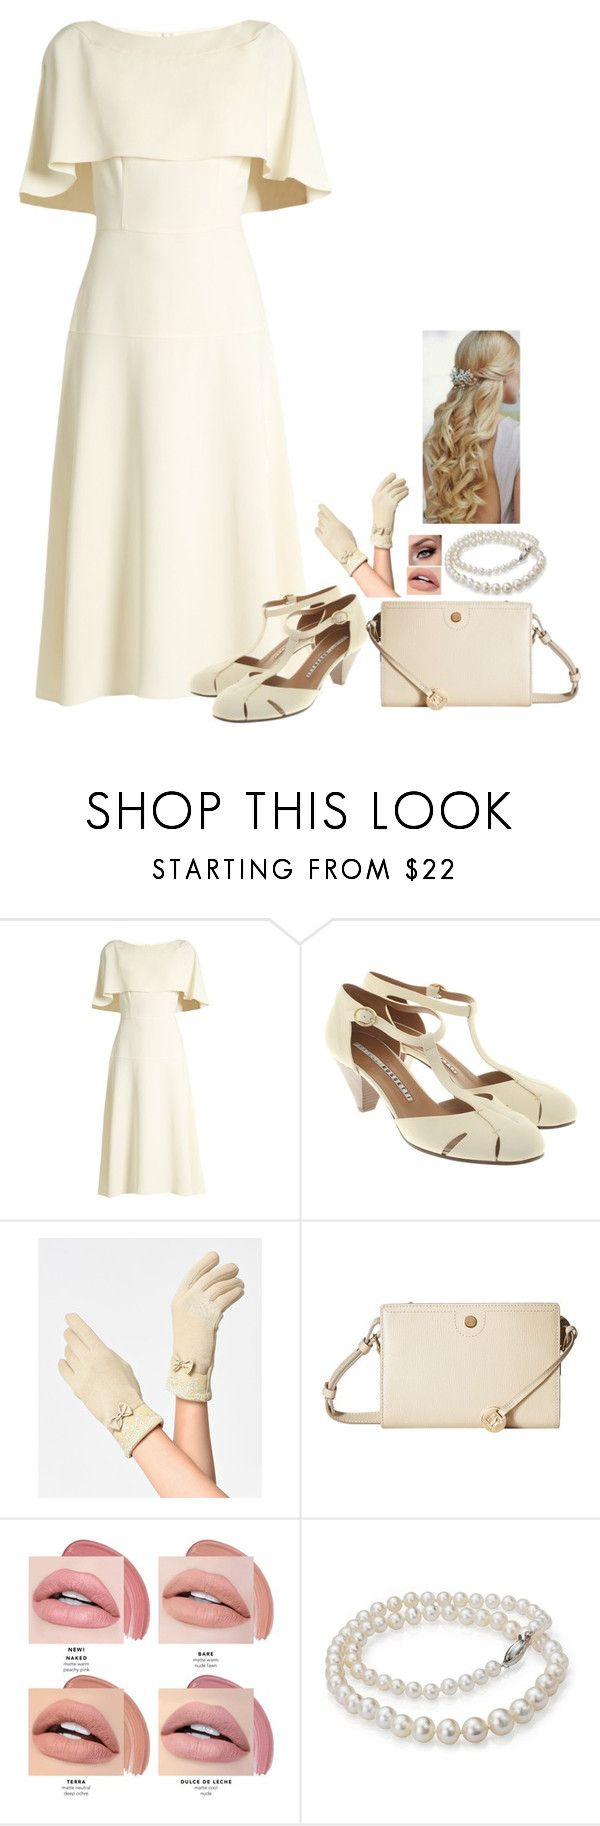 """""""N/A # 2315"""" by wendy00 ❤ liked on Polyvore featuring Osman, Fratelli Rossetti, Lodis and Blue Nile"""